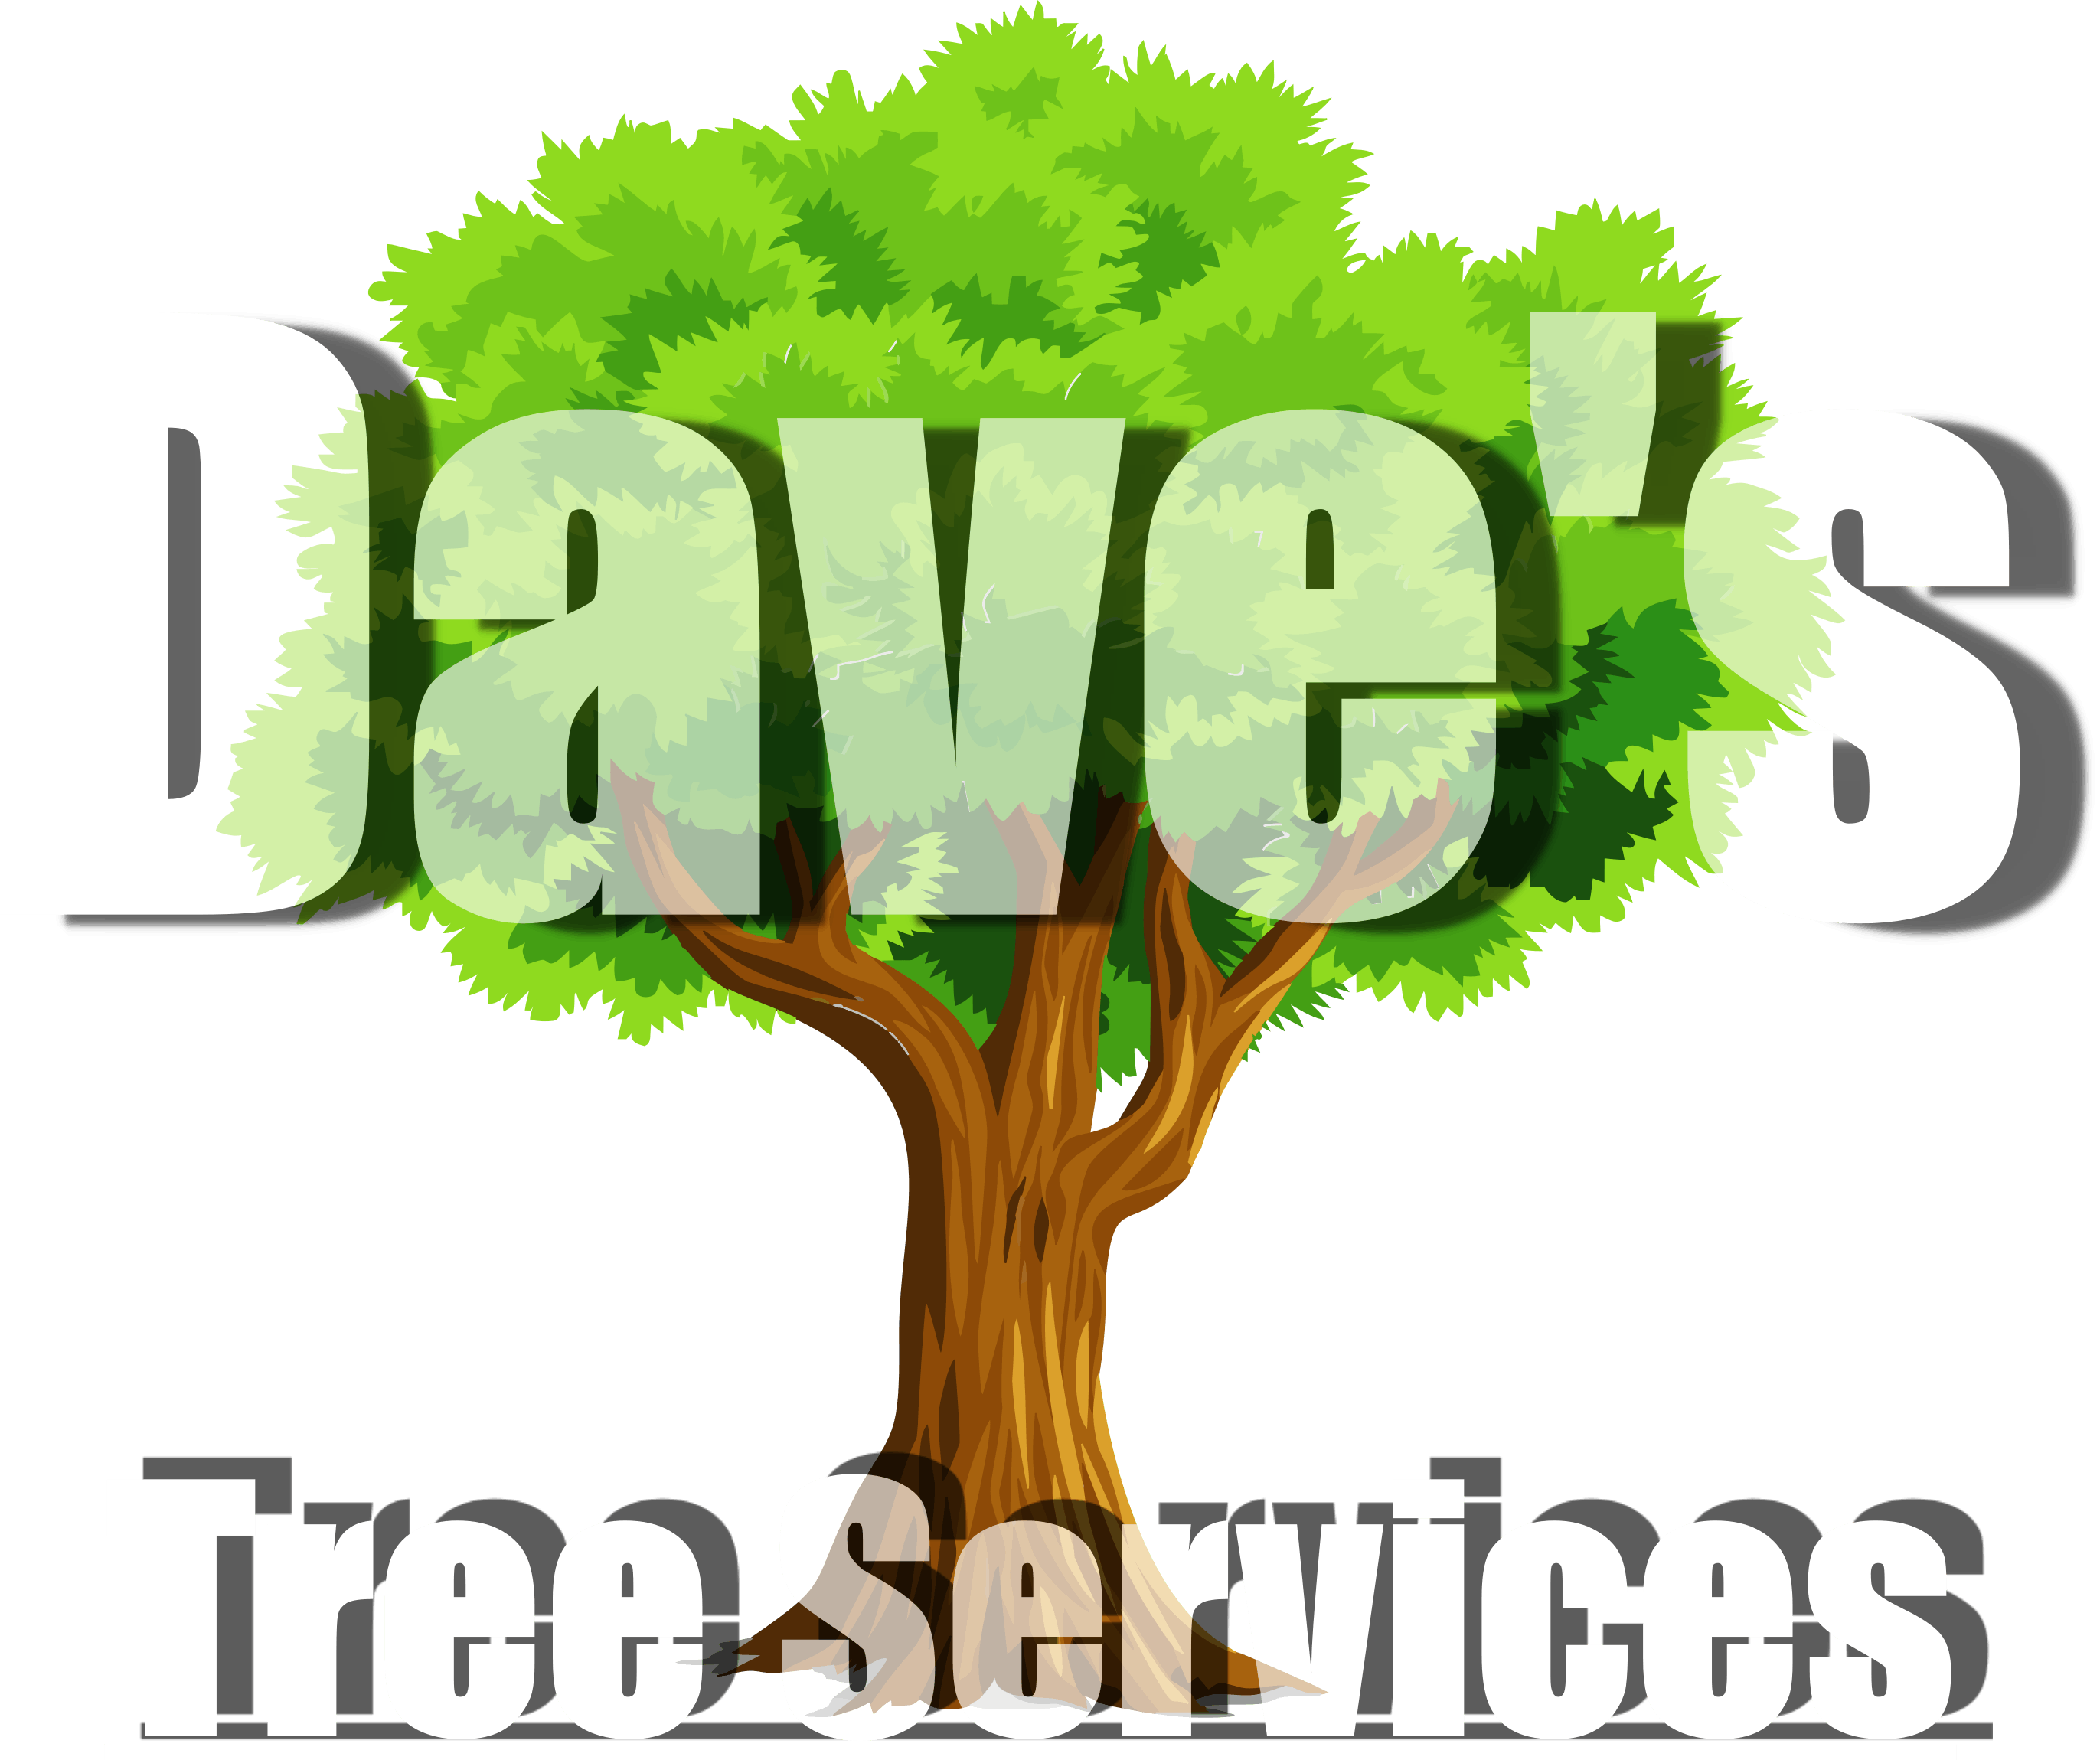 Dave's Tree Services